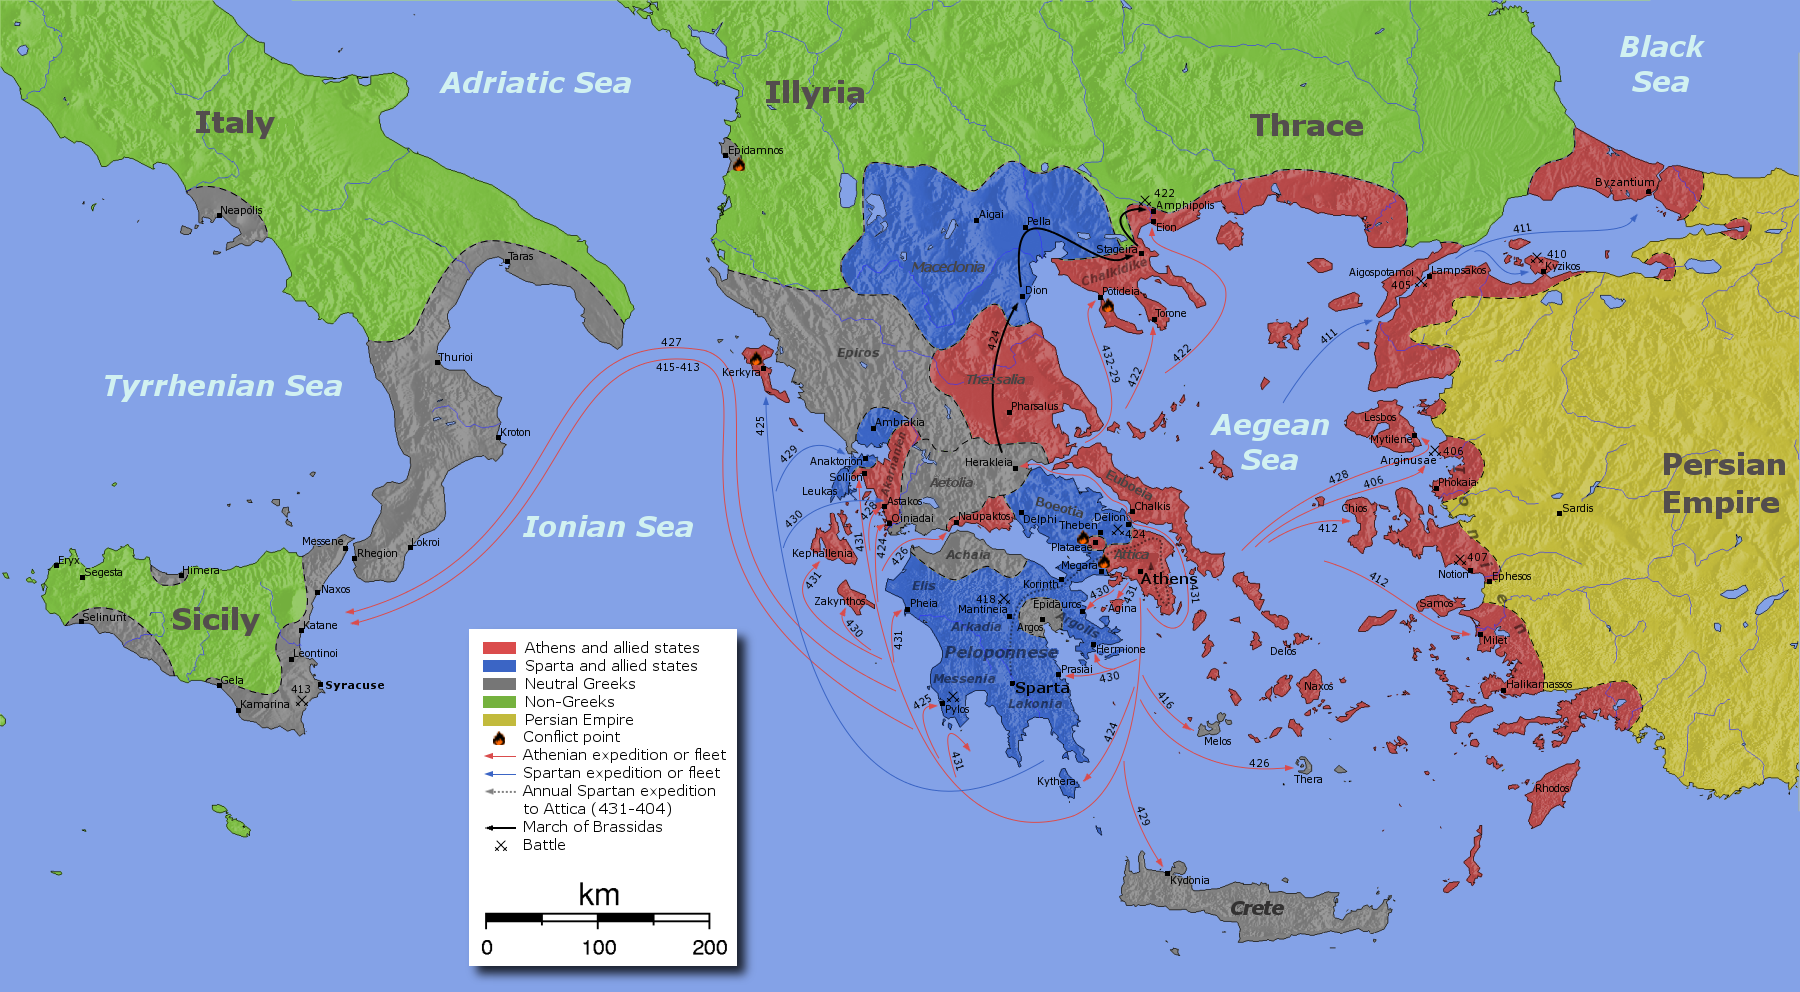 Map of The Peloponnesian War 431404 BC 1800x992 MapPorn